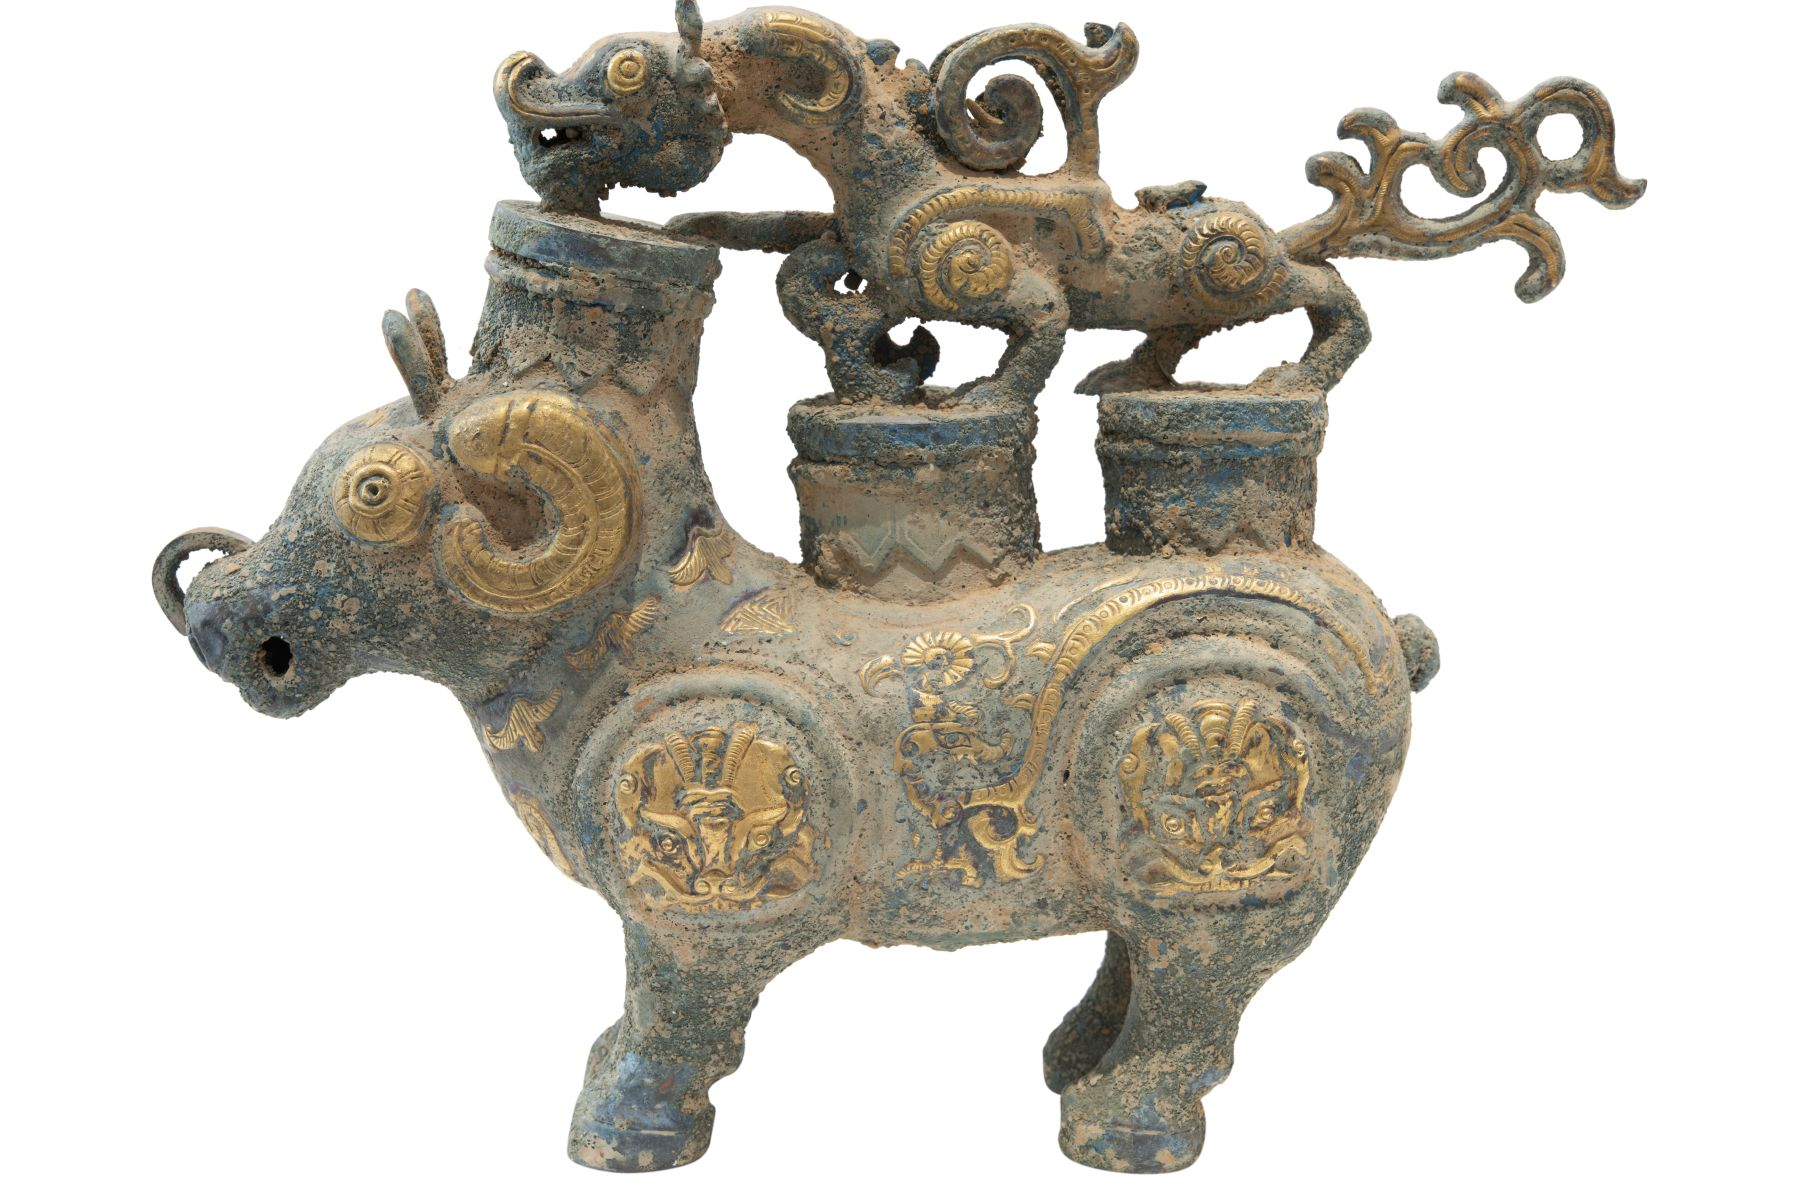 #140 Fire-gilded copper repoussé vessel in the style of the Tang Dynasty, probably late Qing Dynasty | Feuervergoldetes Kupfer Repoussé Gefäß im Stil der Tang Dynastie, vermutlich späte Qing Dynastie Image